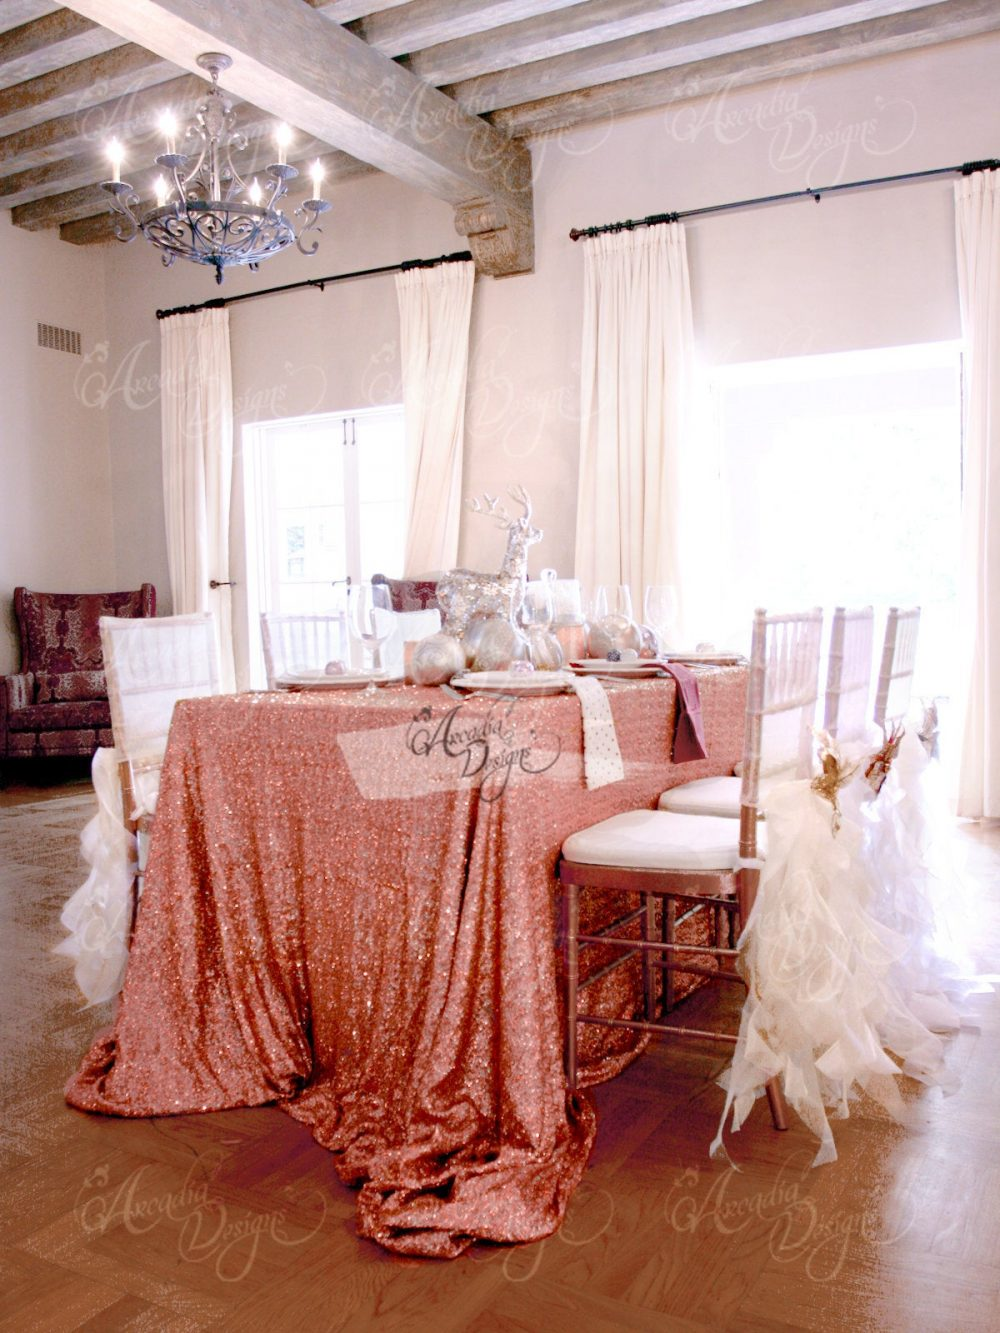 Rose Gold Sequin Tablecloth | Made To Order Shimmer Sparkly Overlays Table Cloths For Wedding, Event, Bridal Shower, Ceremony